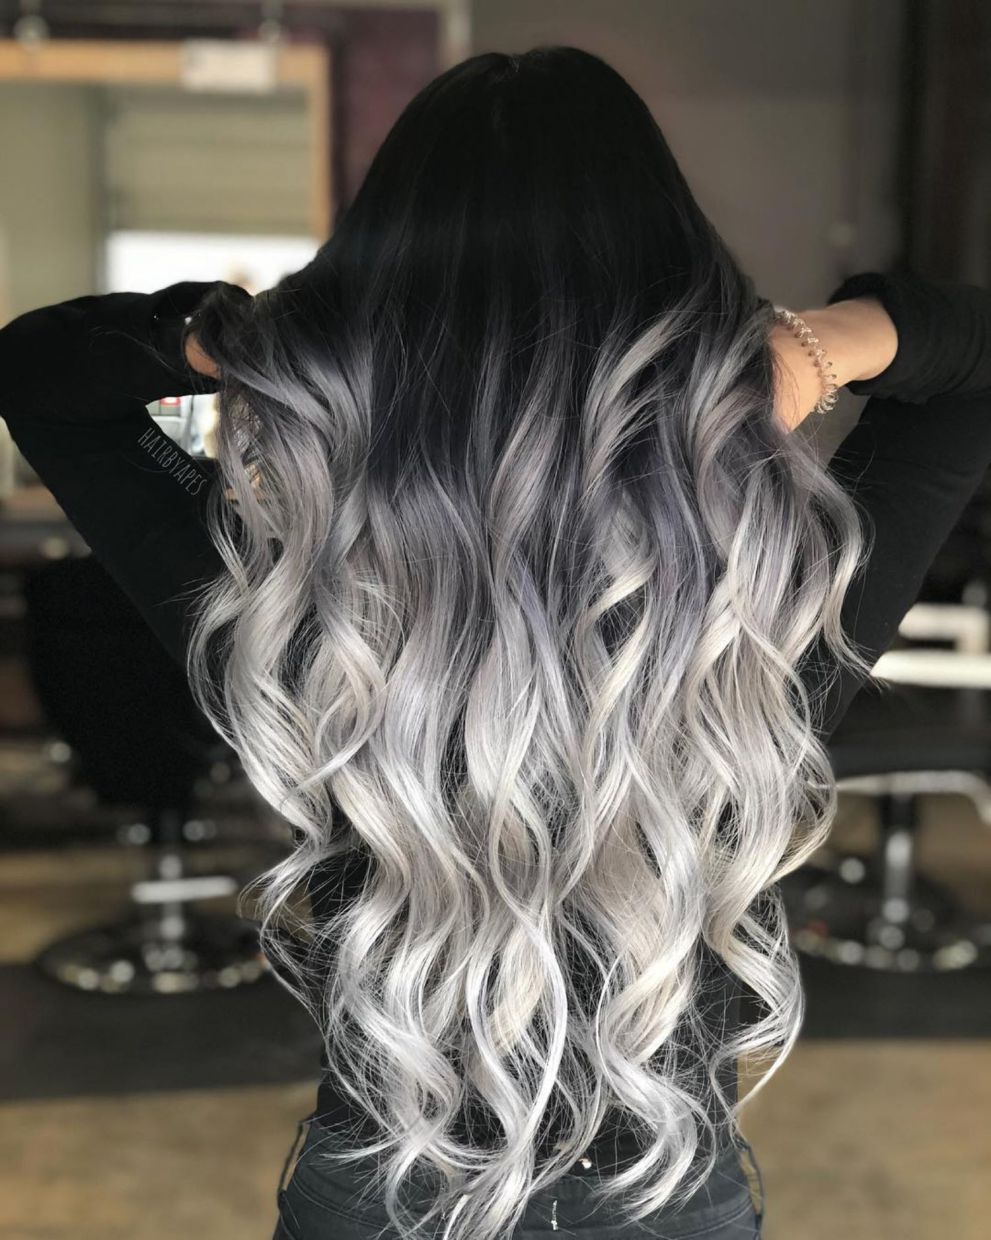 60 Shades of Grey: Silver and White Highlights for Eternal Youth #cabelos